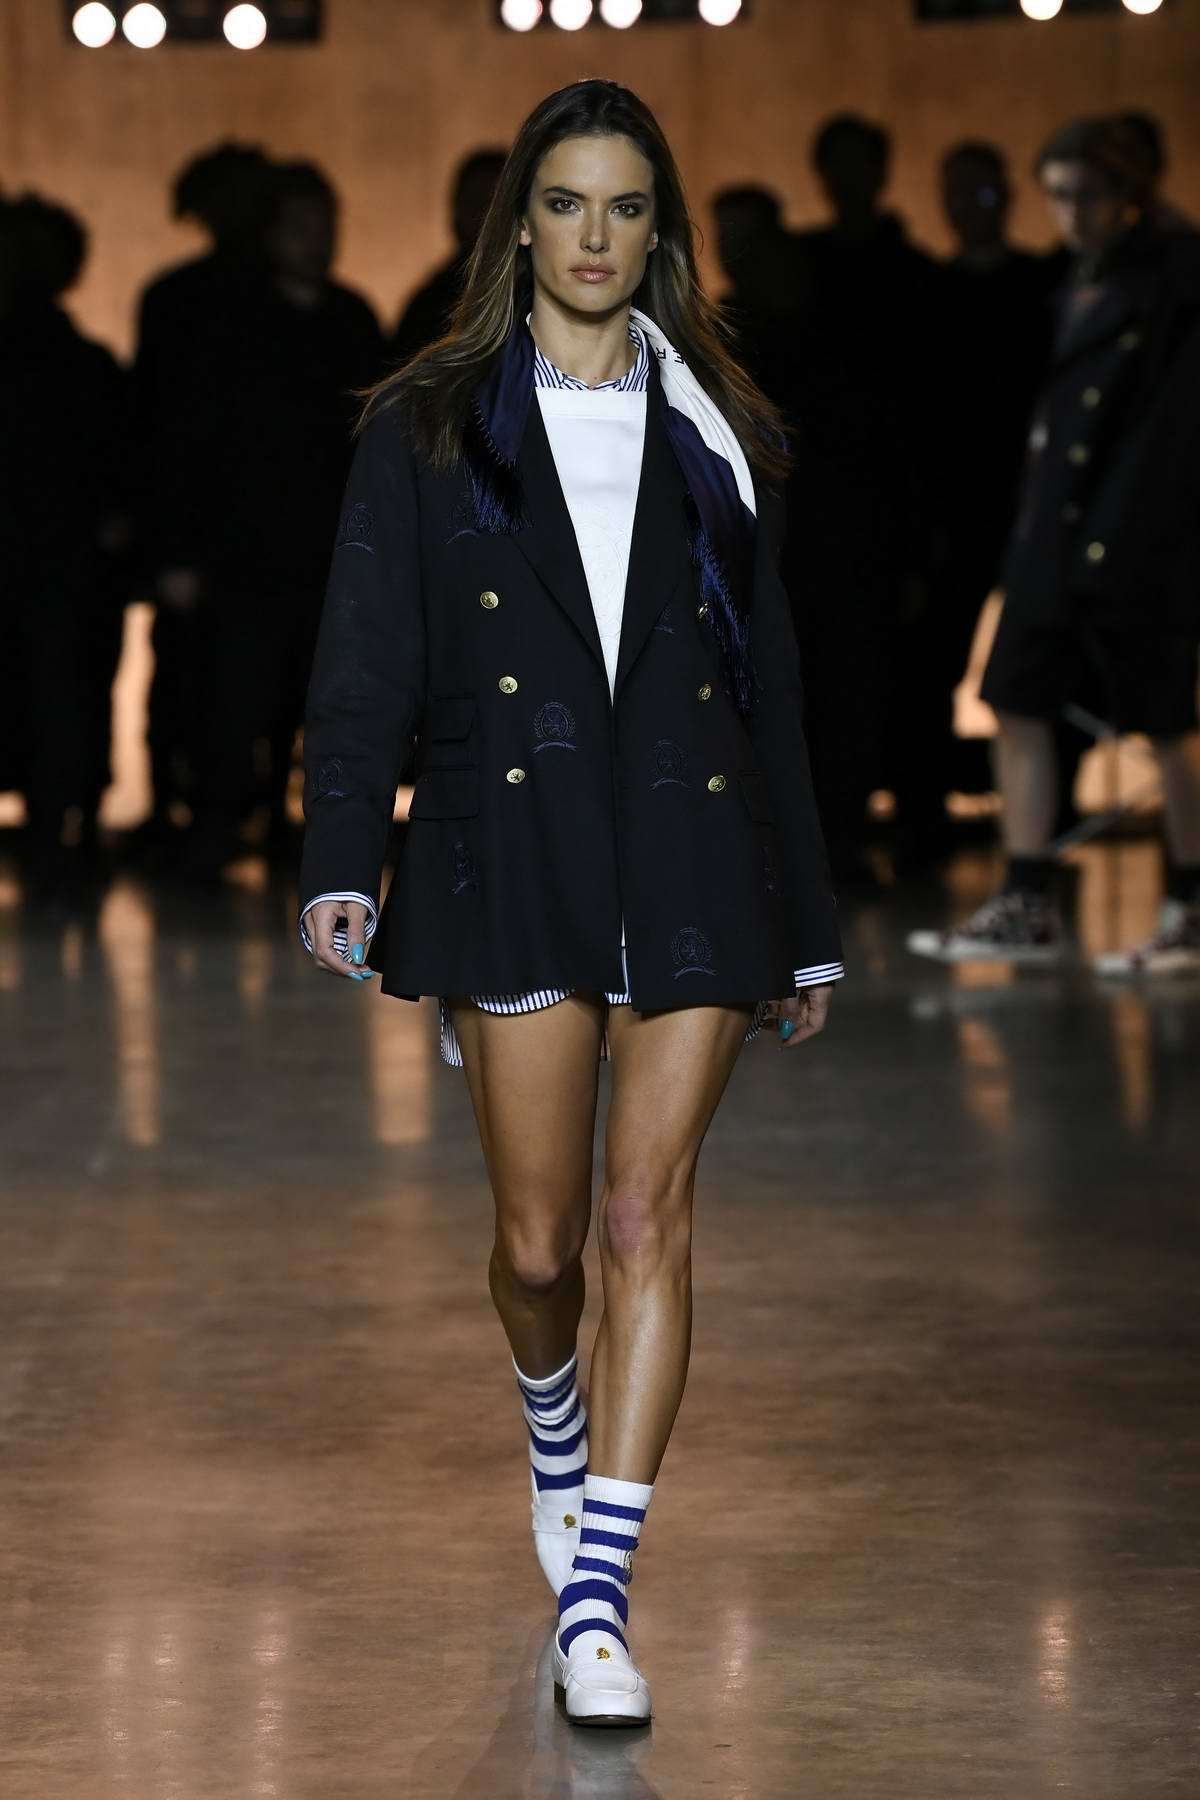 Alessandra Ambrosio walks the runway at Tommy Hilfiger AW20 show during London Fashion Week in London, UK